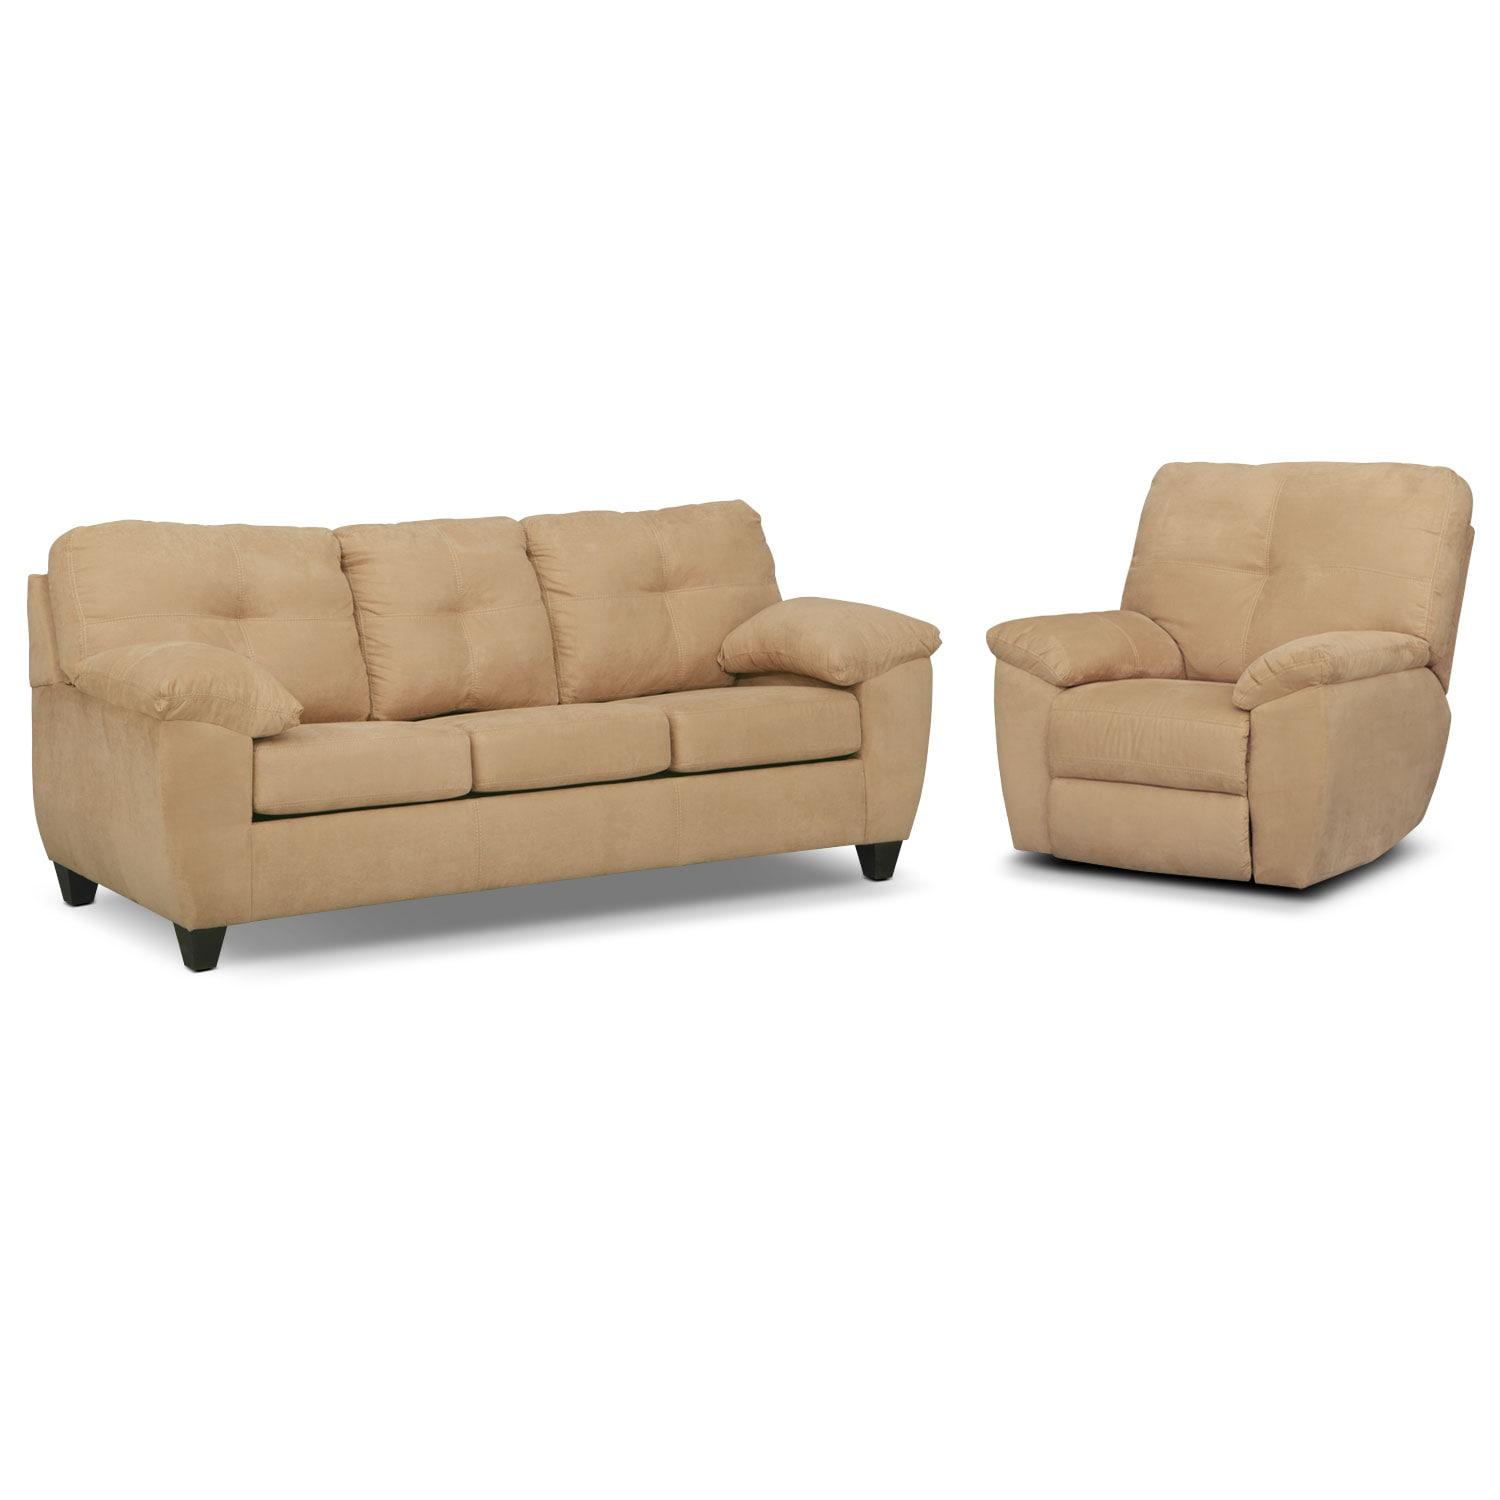 Living Room Furniture - Rialto Camel 2 Pc. Sleeper Living Room w/ Recliner- Innerspring